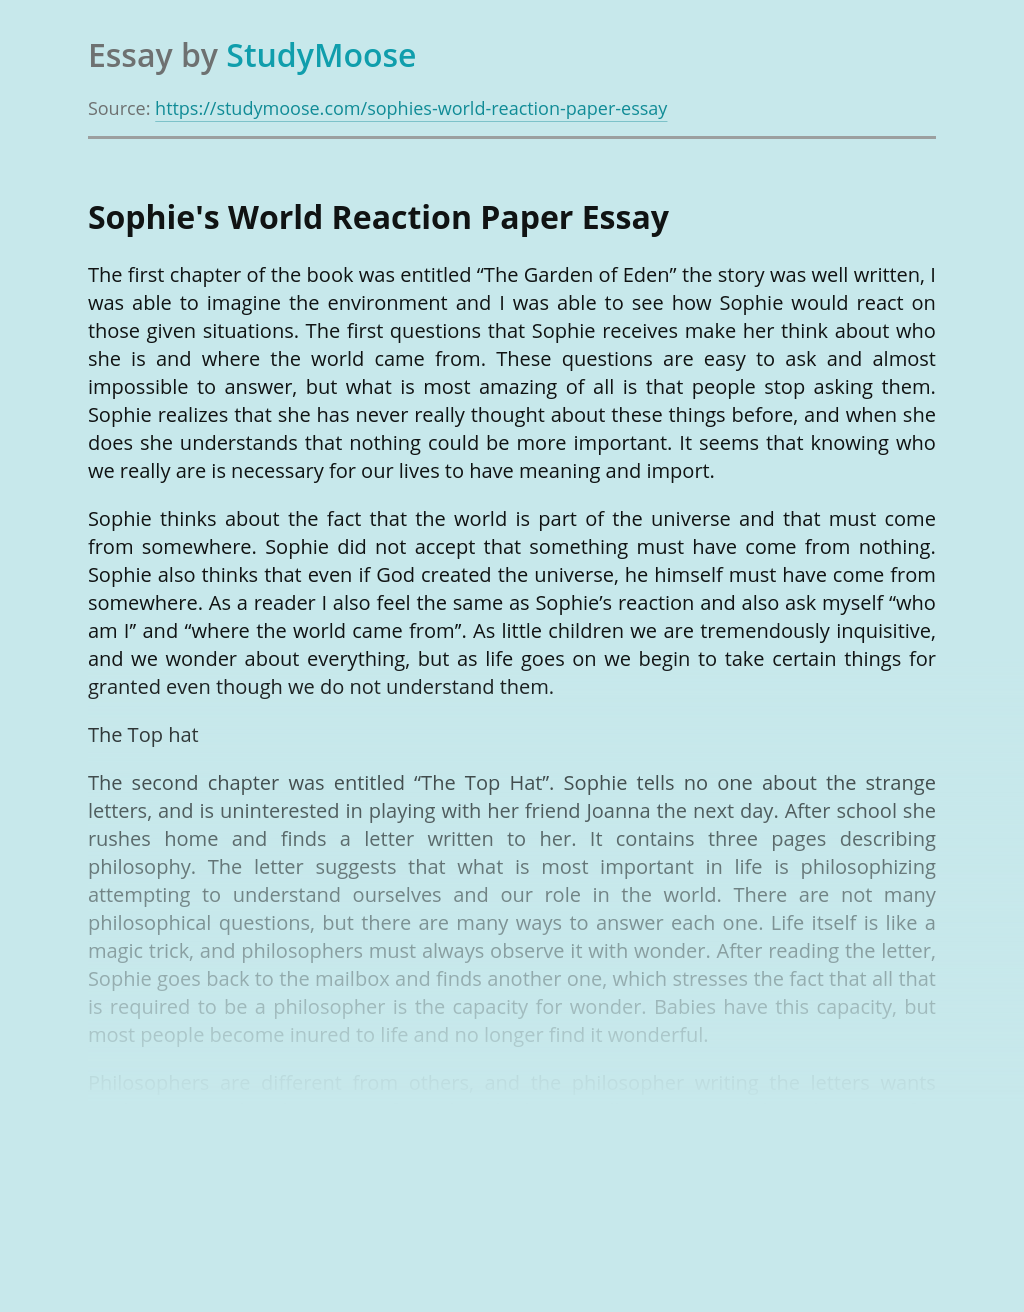 Sophie's World Reaction Paper